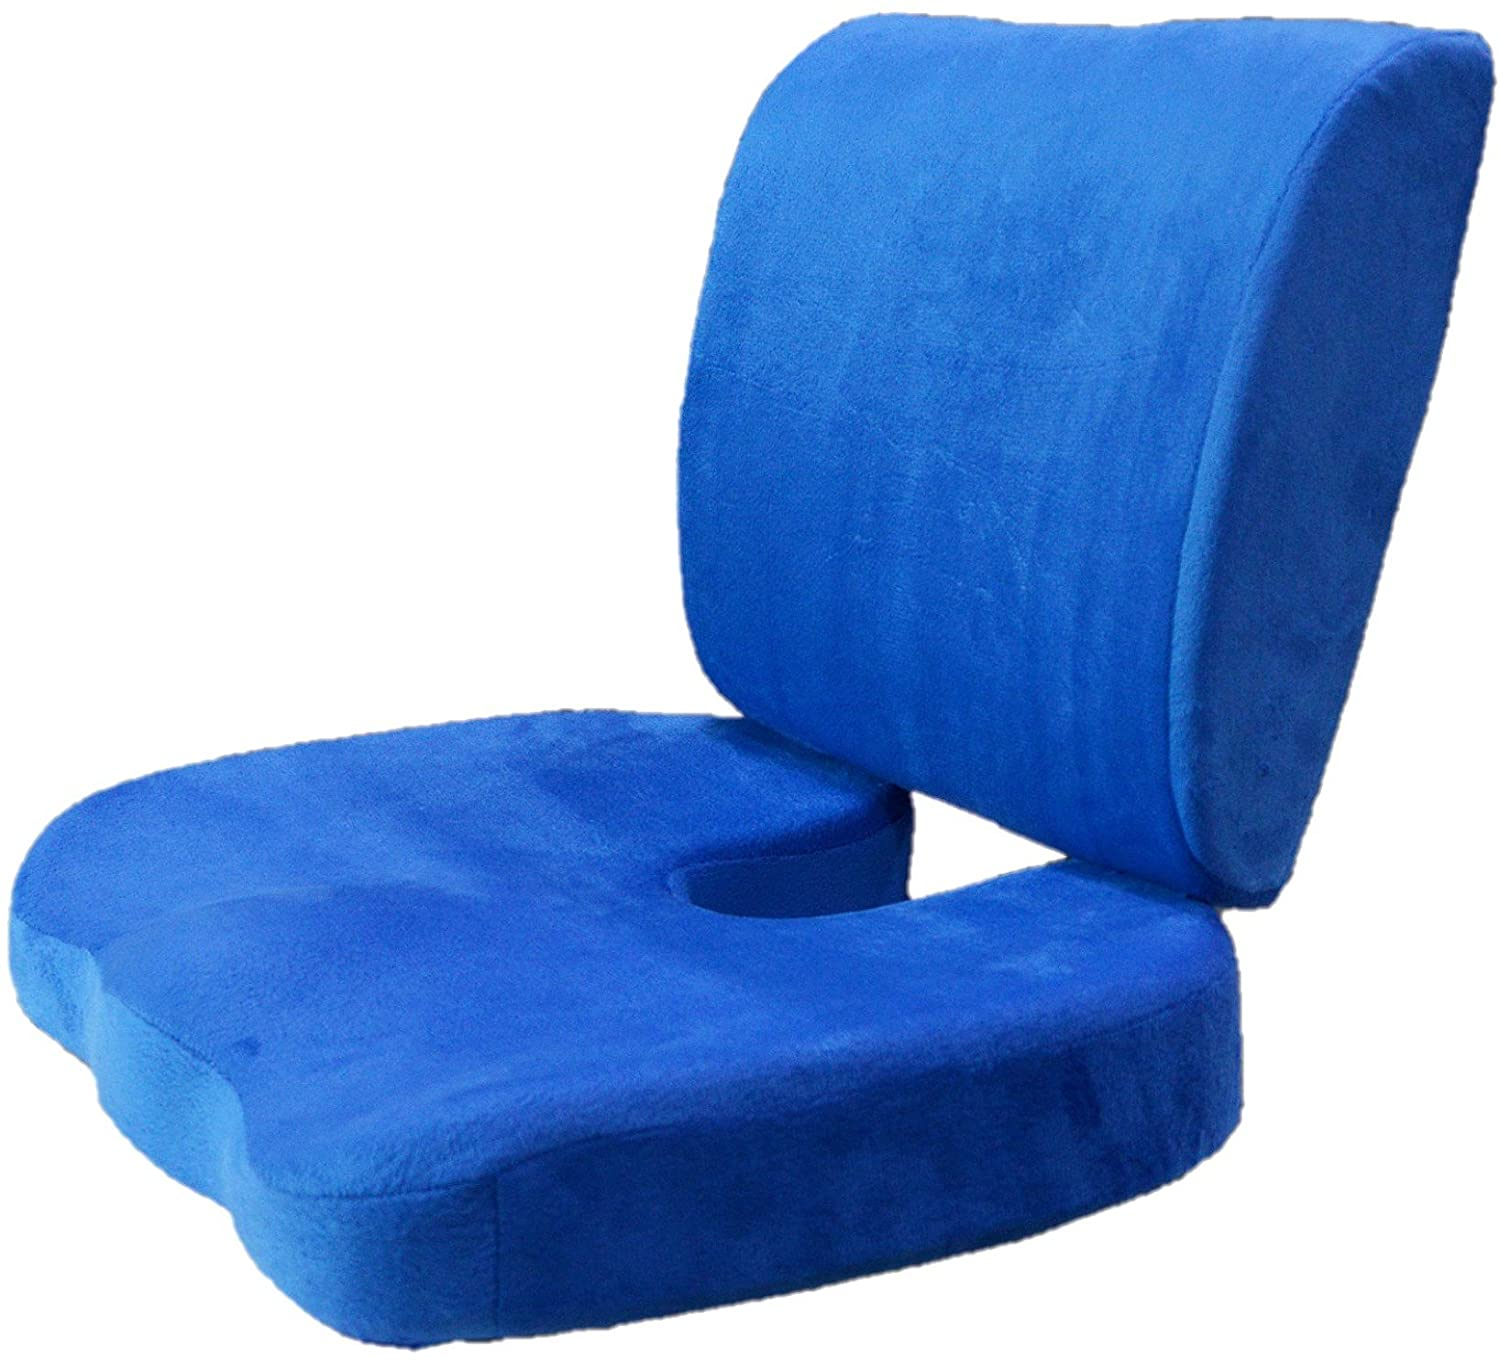 Adjustable Strap Lumbar Back Cushion and Seat Cushion: Back Support Pillow Memory Foam Car Office Chair (Blue Cushion and Seat Cushion)